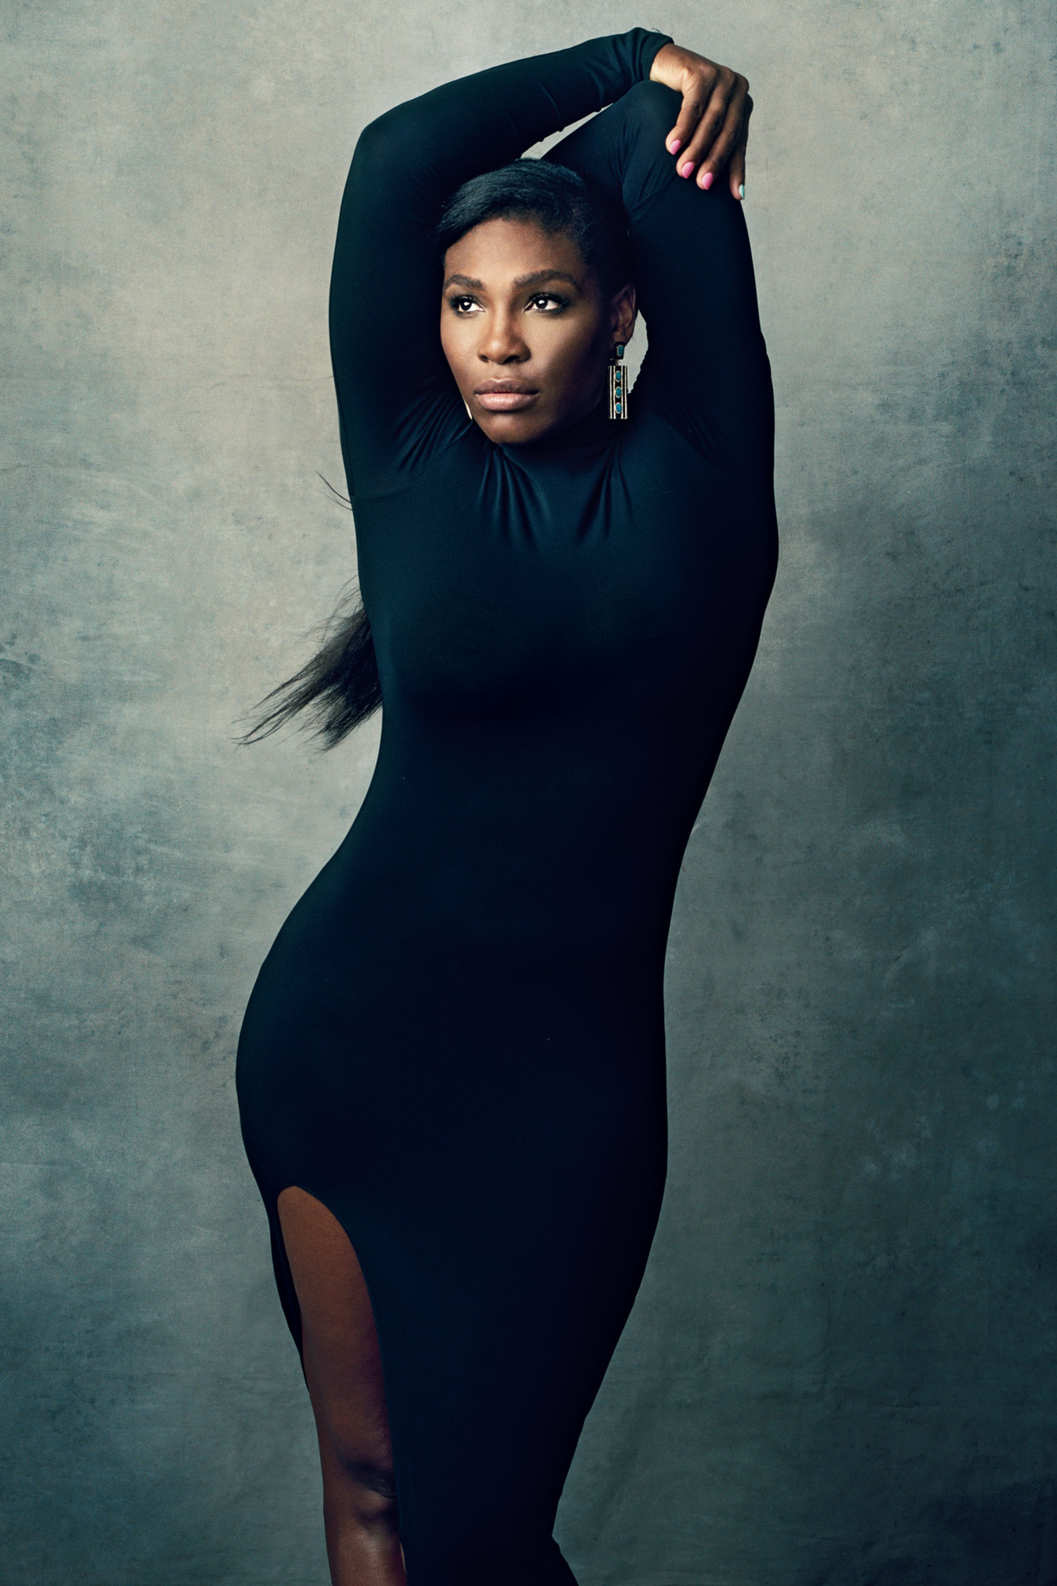 She is back, this time showing off what she keeps underneath her tennis gear. Serena Williams talks to The New Yorkerhttp://nymag.com/thecut/2015/08/serena-williams-still-has-tennis-history-to-make.html ...As you would remember from our previous post about Serena, her body being compared to a gorilla. And this written piece by the New Yorker is the complete opposite. Slay like Slayerna.